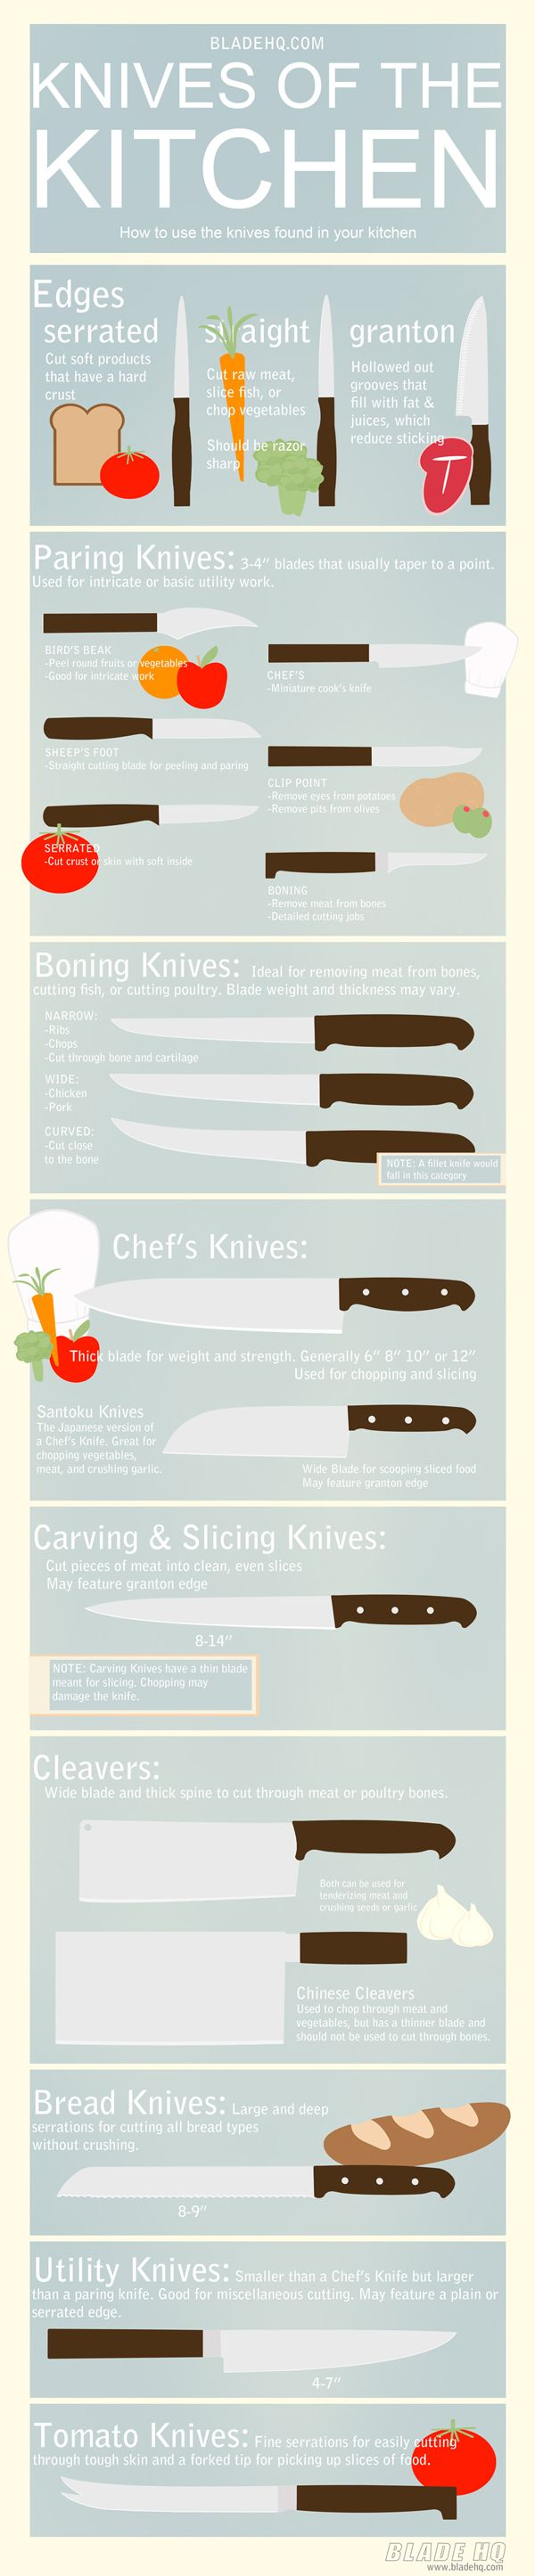 22 Kitchen Cheat Sheet Guides! I think I may have just learned everything I could ever want to know about the kitchen!